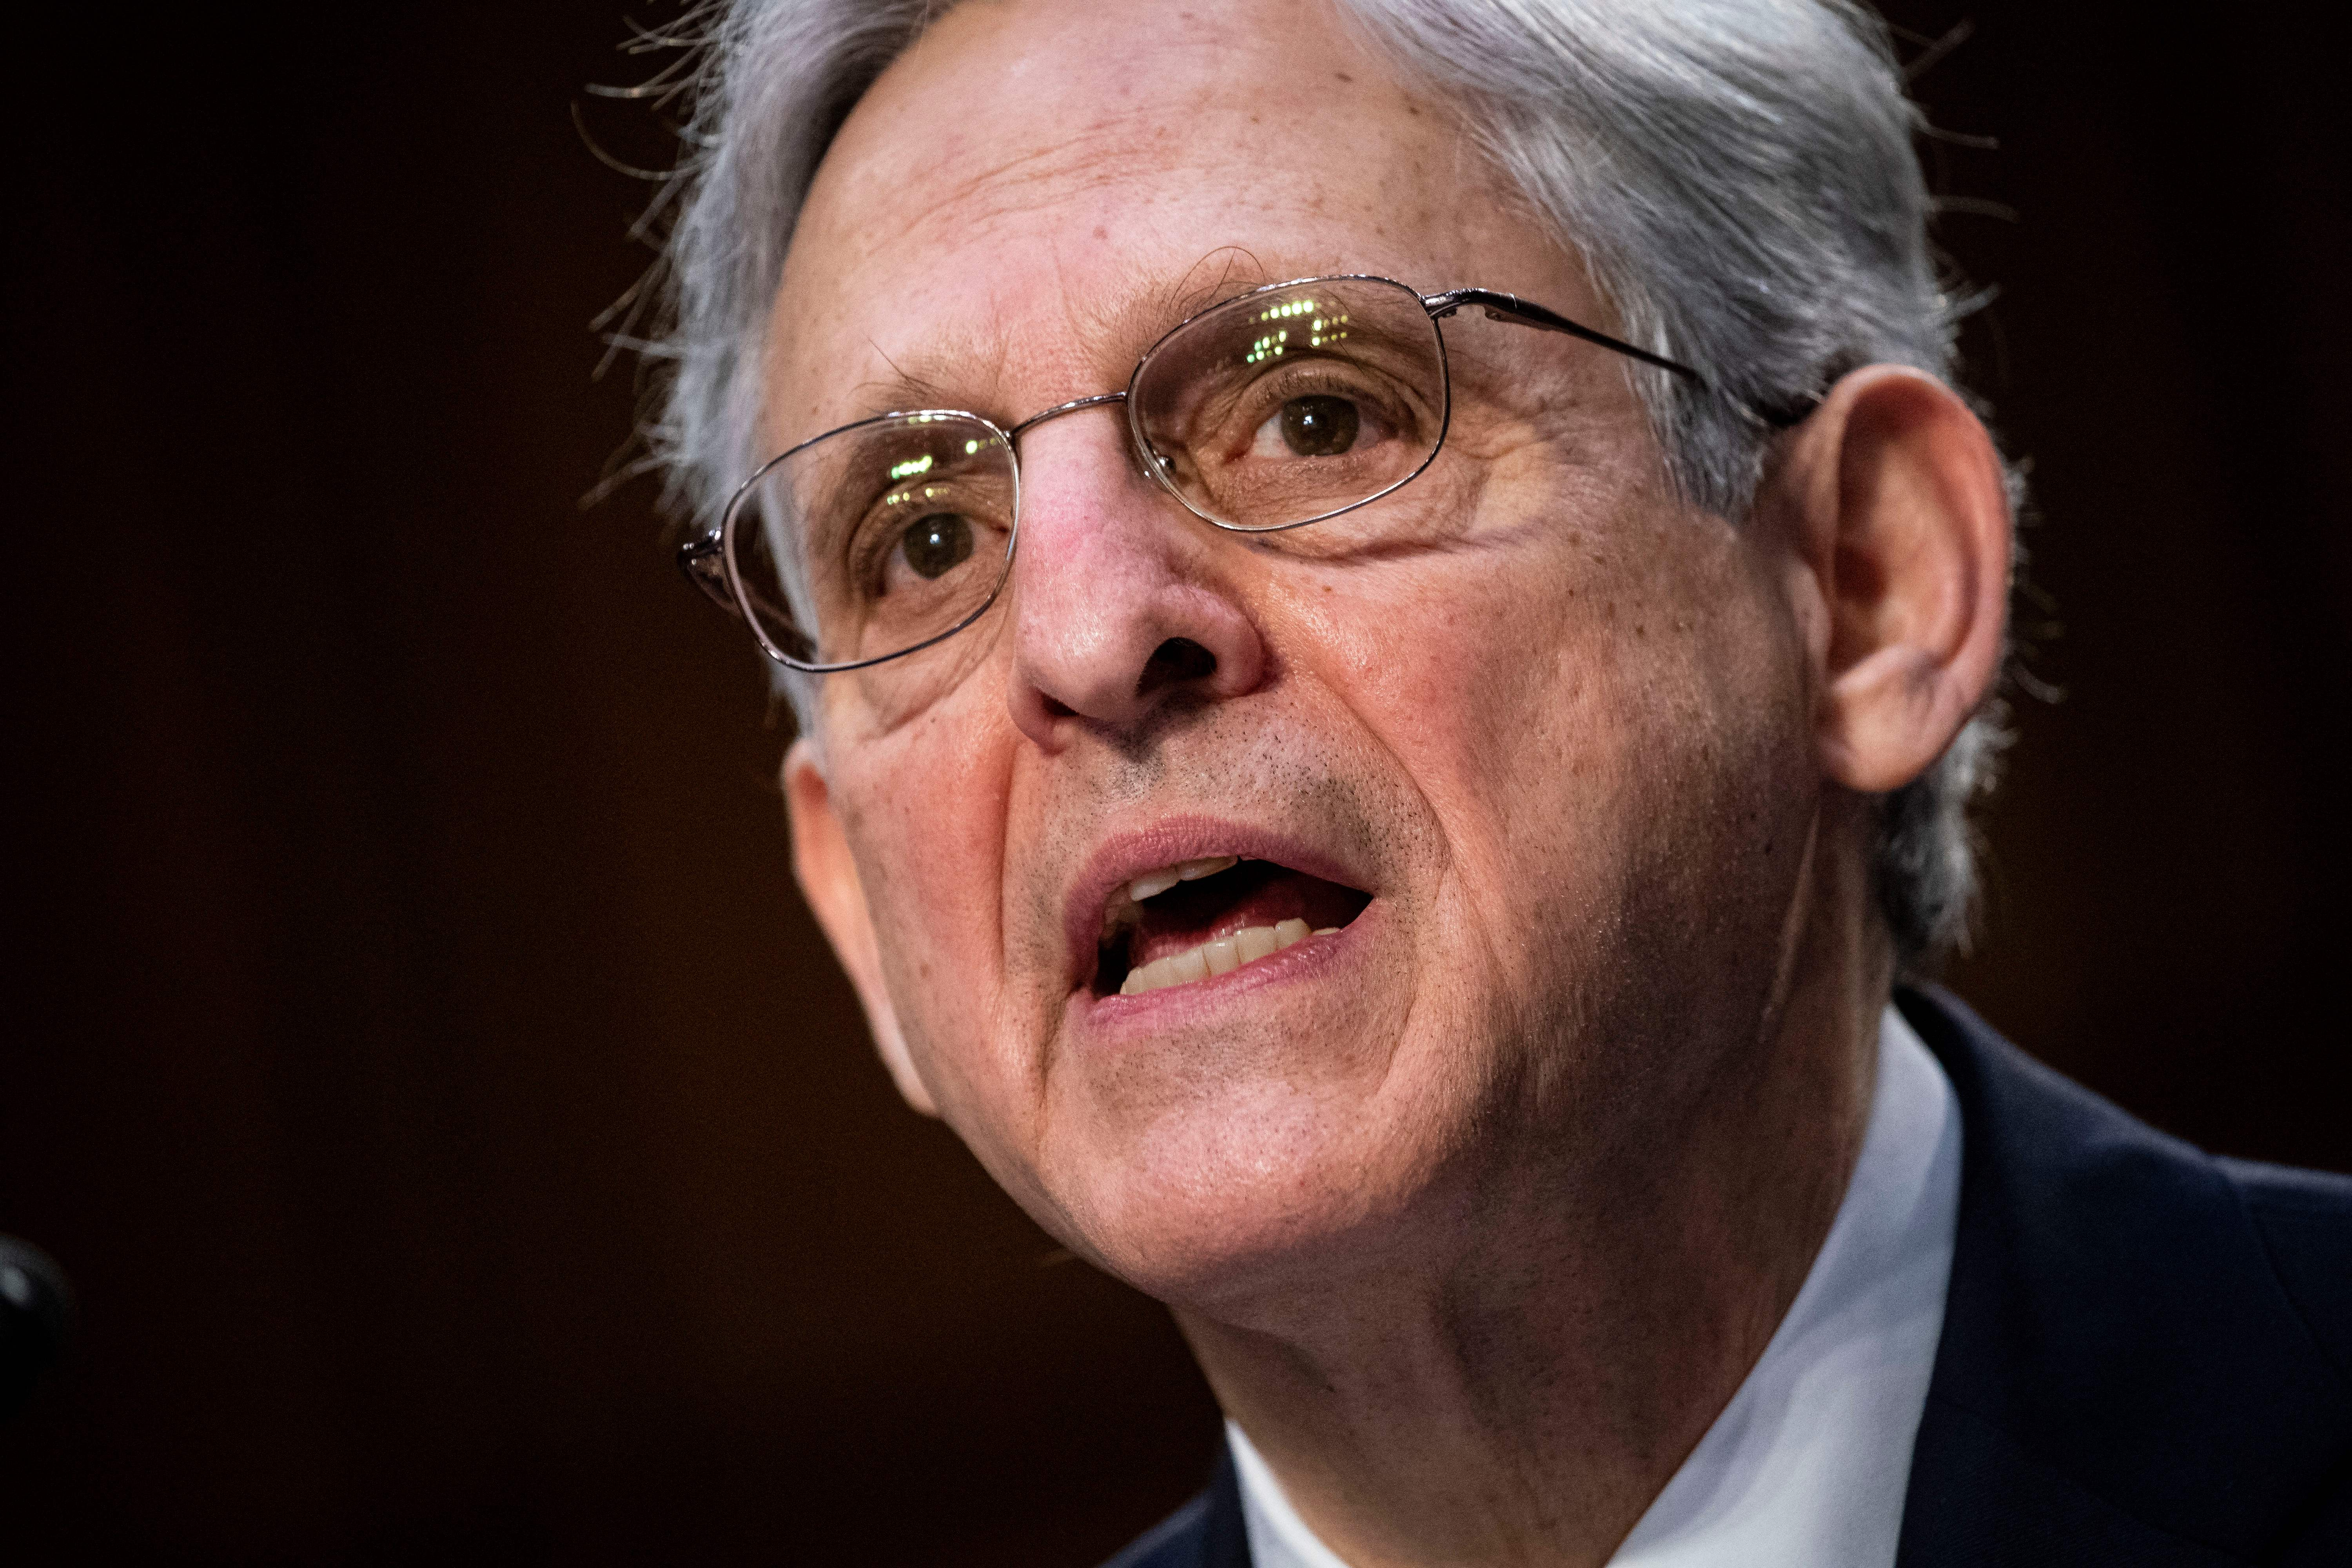 Attorney General Merrick Garland on Capitol Hill in Washington, D.C. (Photo by AL DRAGO/POOL/AFP via Getty Images)